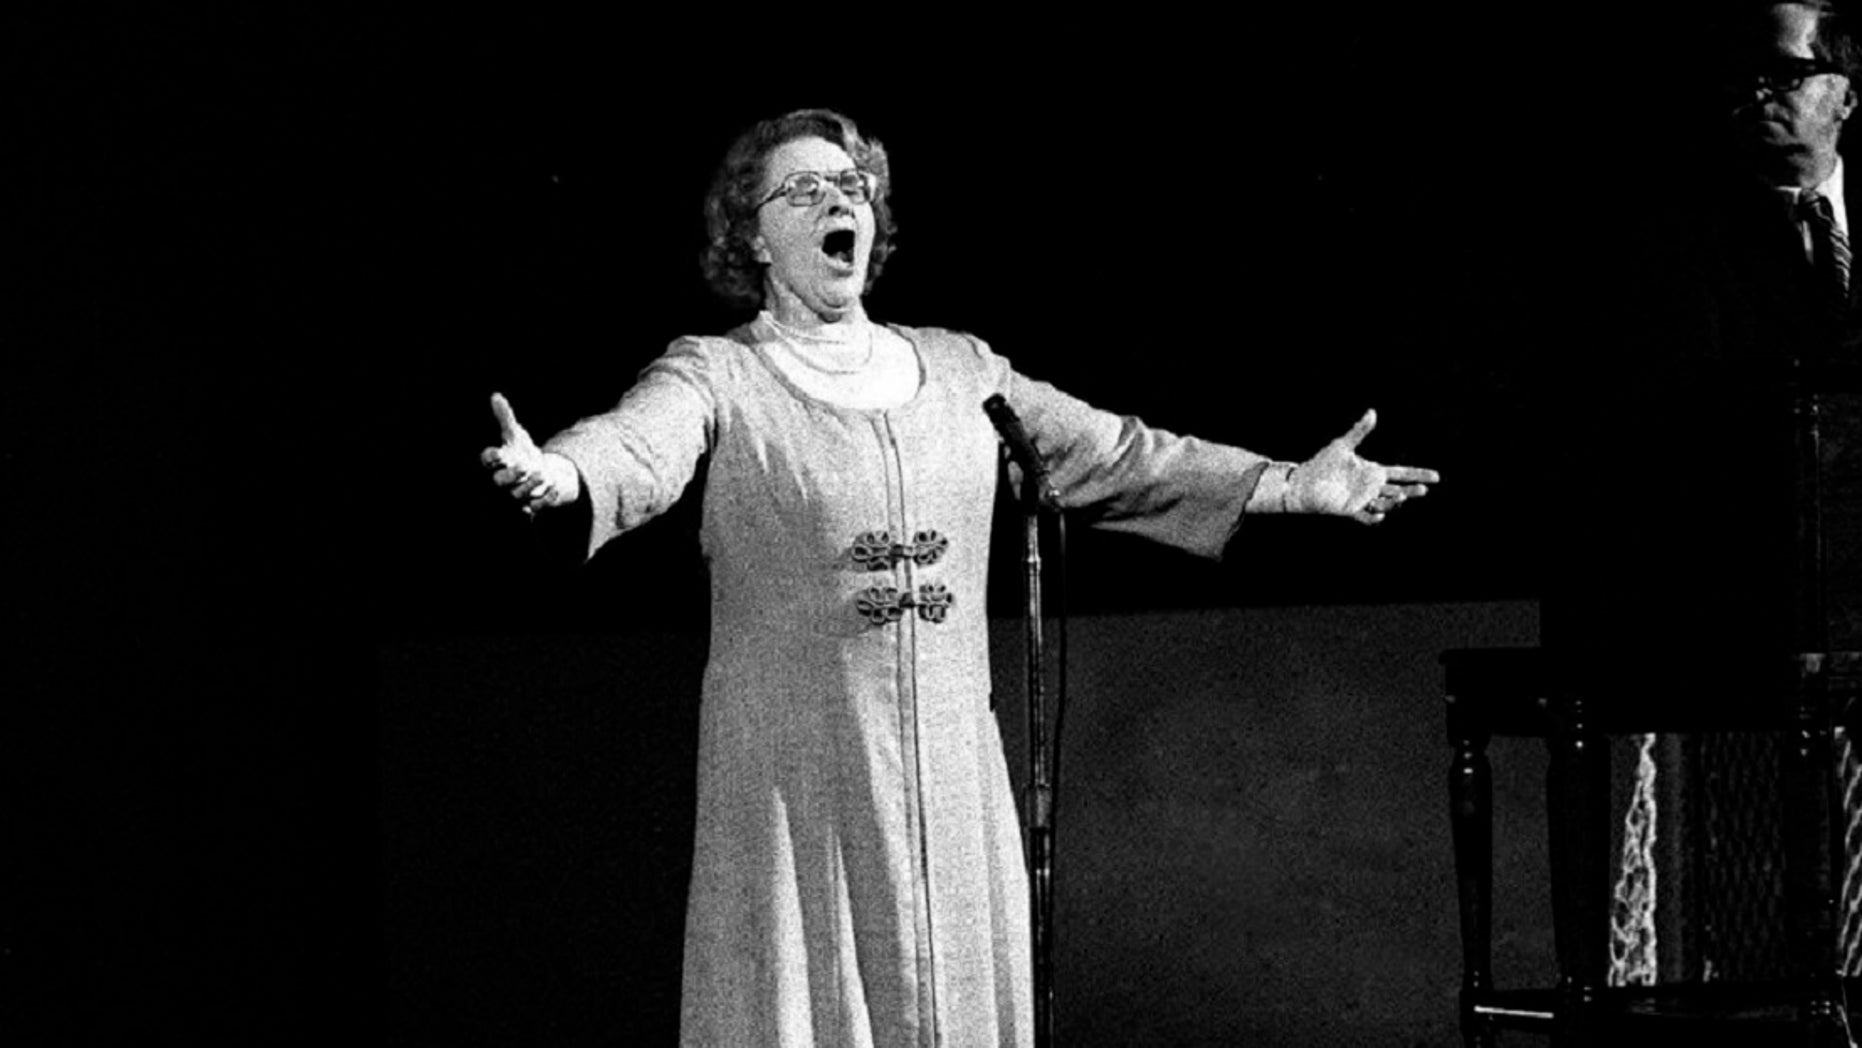 Philadelphia Flyers cover statue of singer Kate Smith amid racism allegations